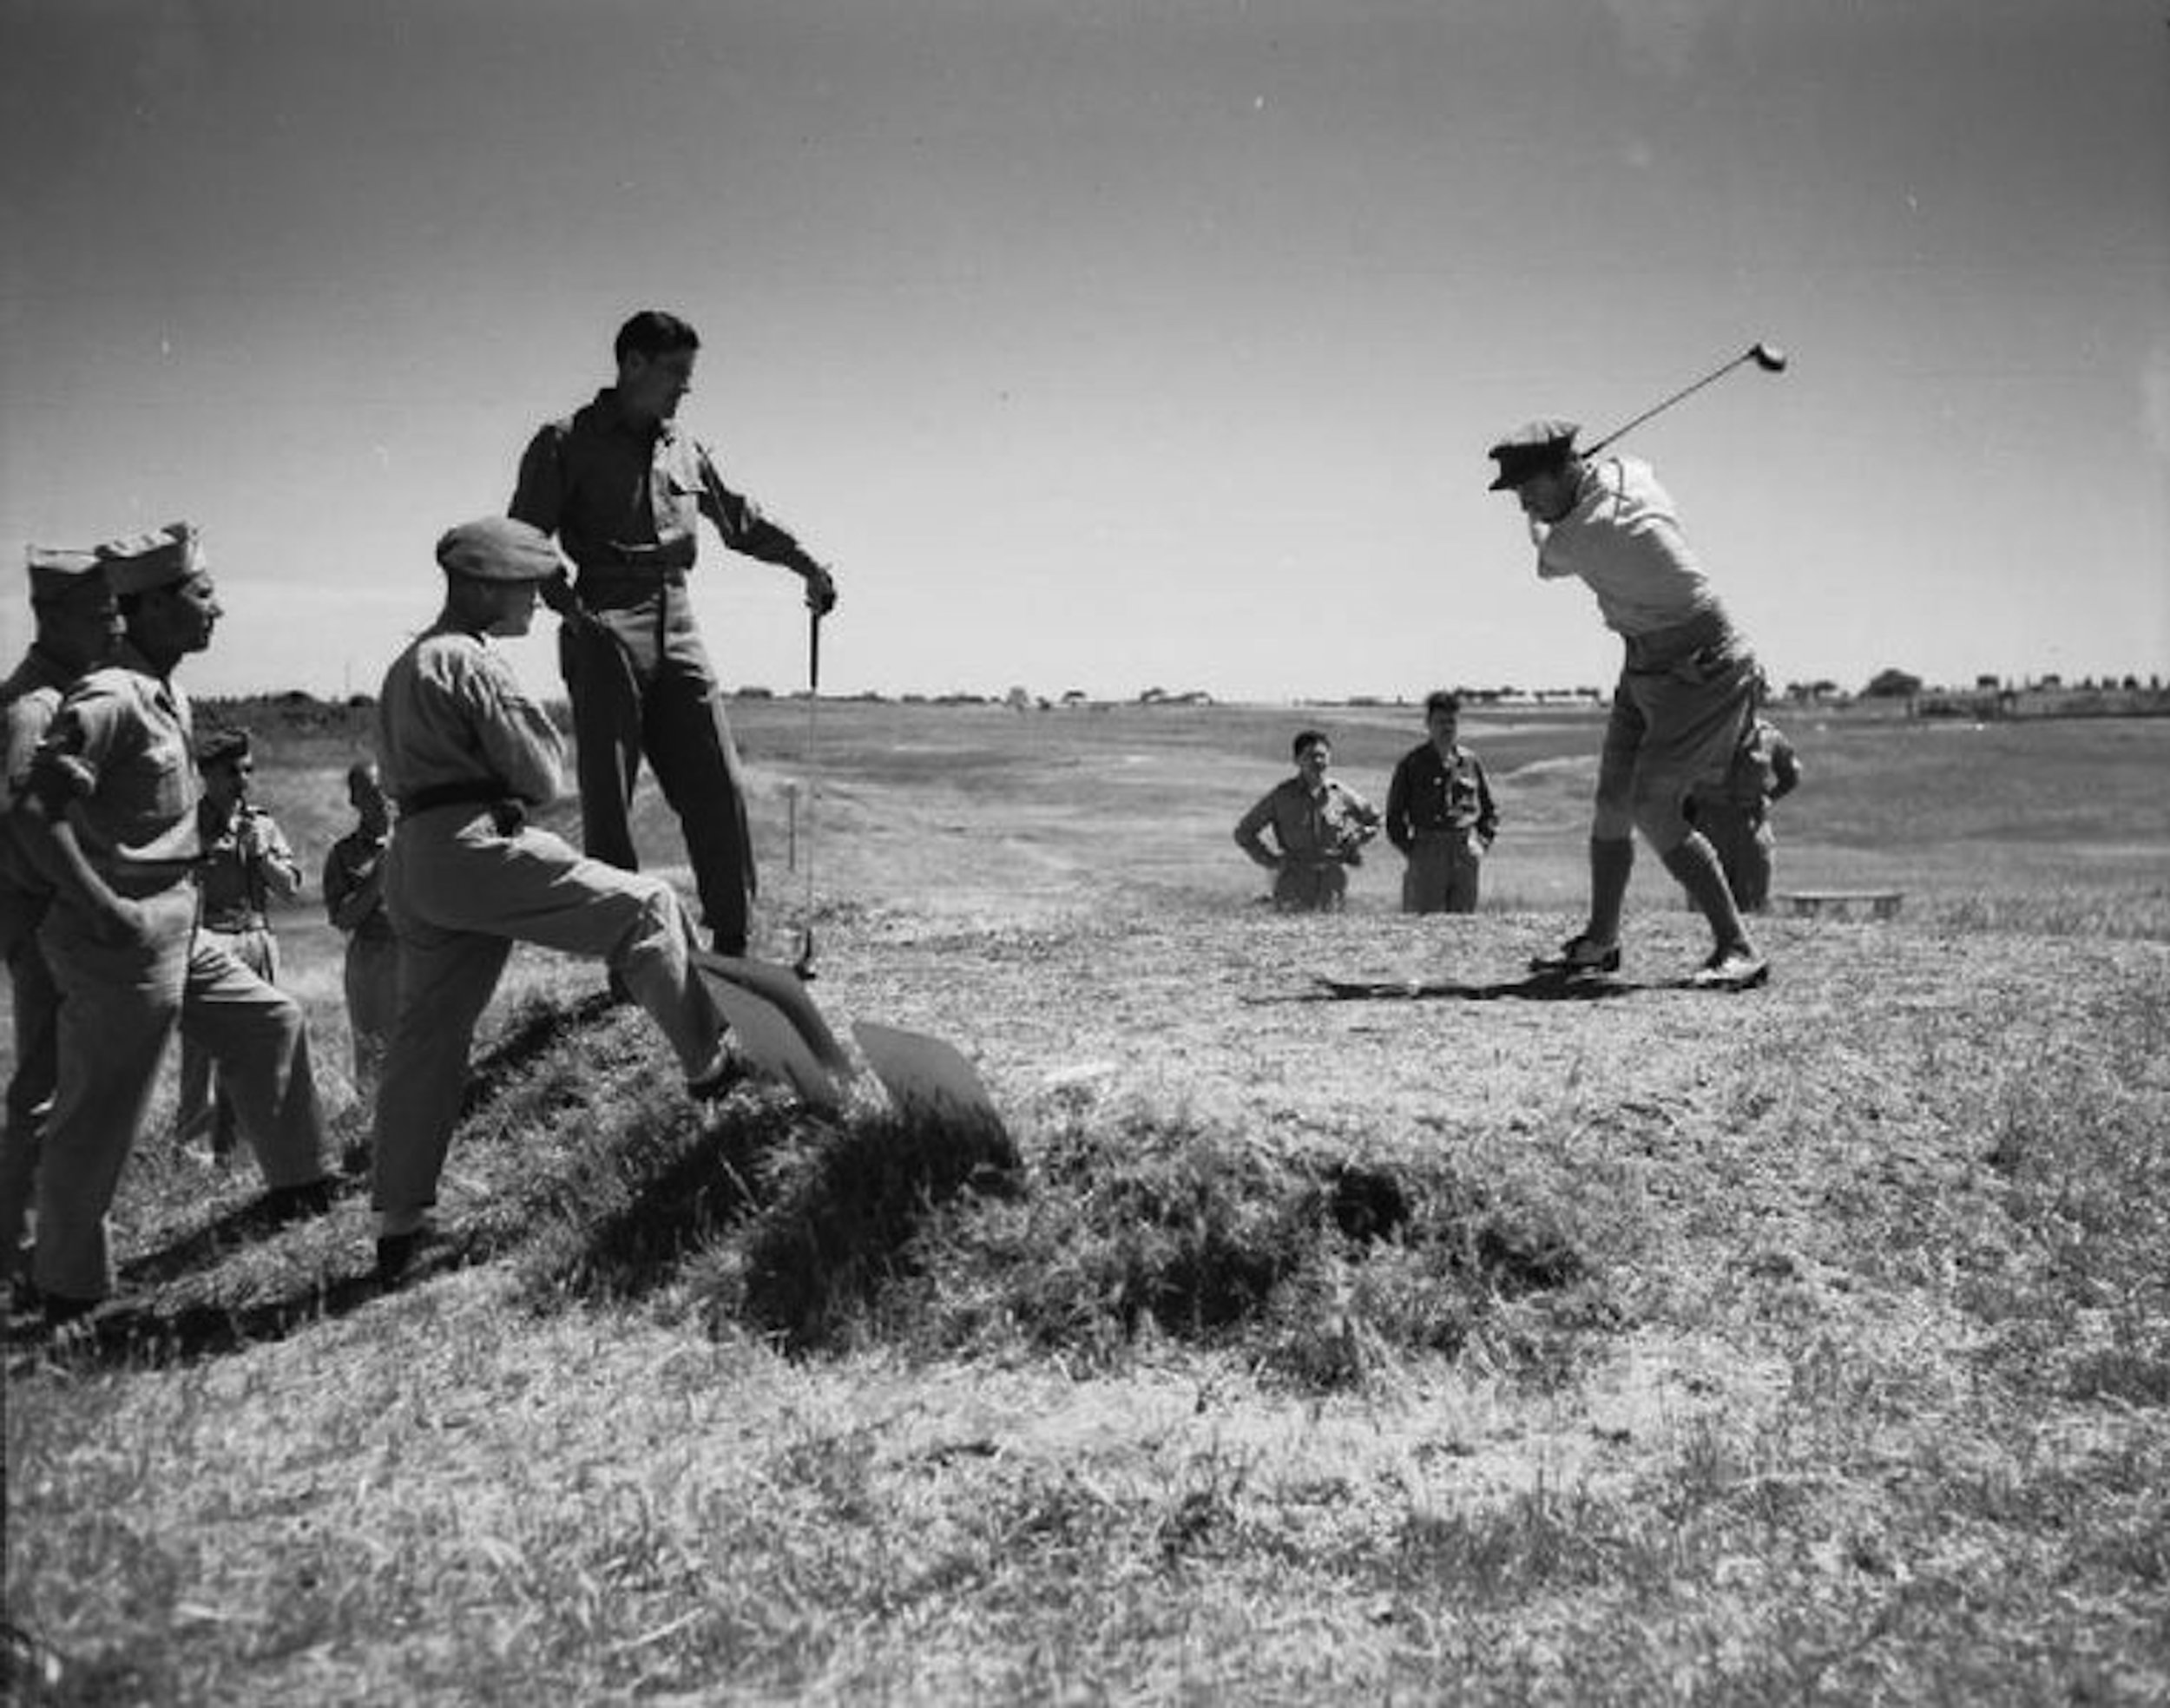 Private Tommy Bolt watches Lieutenant Bobby Locke go after a drive in a Services Golf Tournament in rome. In the post-World War II years Bolt would win a U.S. Open and the first ever Rubber City Open at Firestone; Locke would capture four British Open championships.